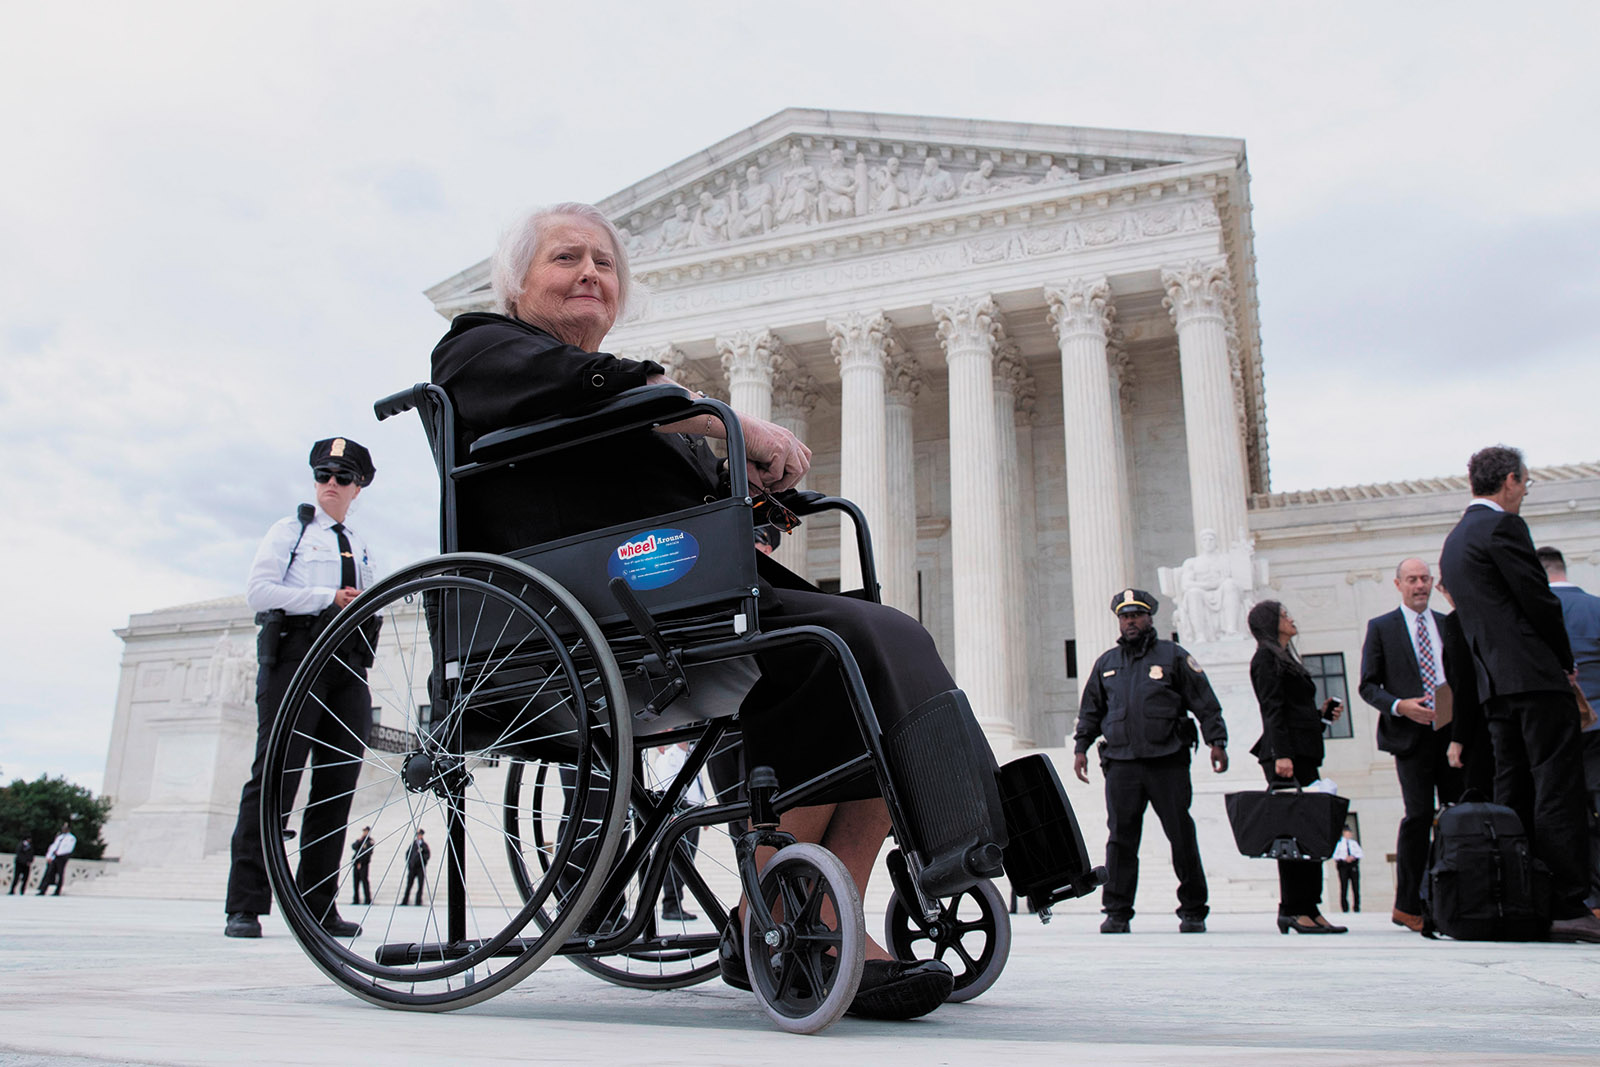 Aimee Stephens outside the Supreme Court after oral arguments by David Cole in her case challenging the legality of discrimination against transgender employees, Washington, D.C., October 2019. Stephens died in May.